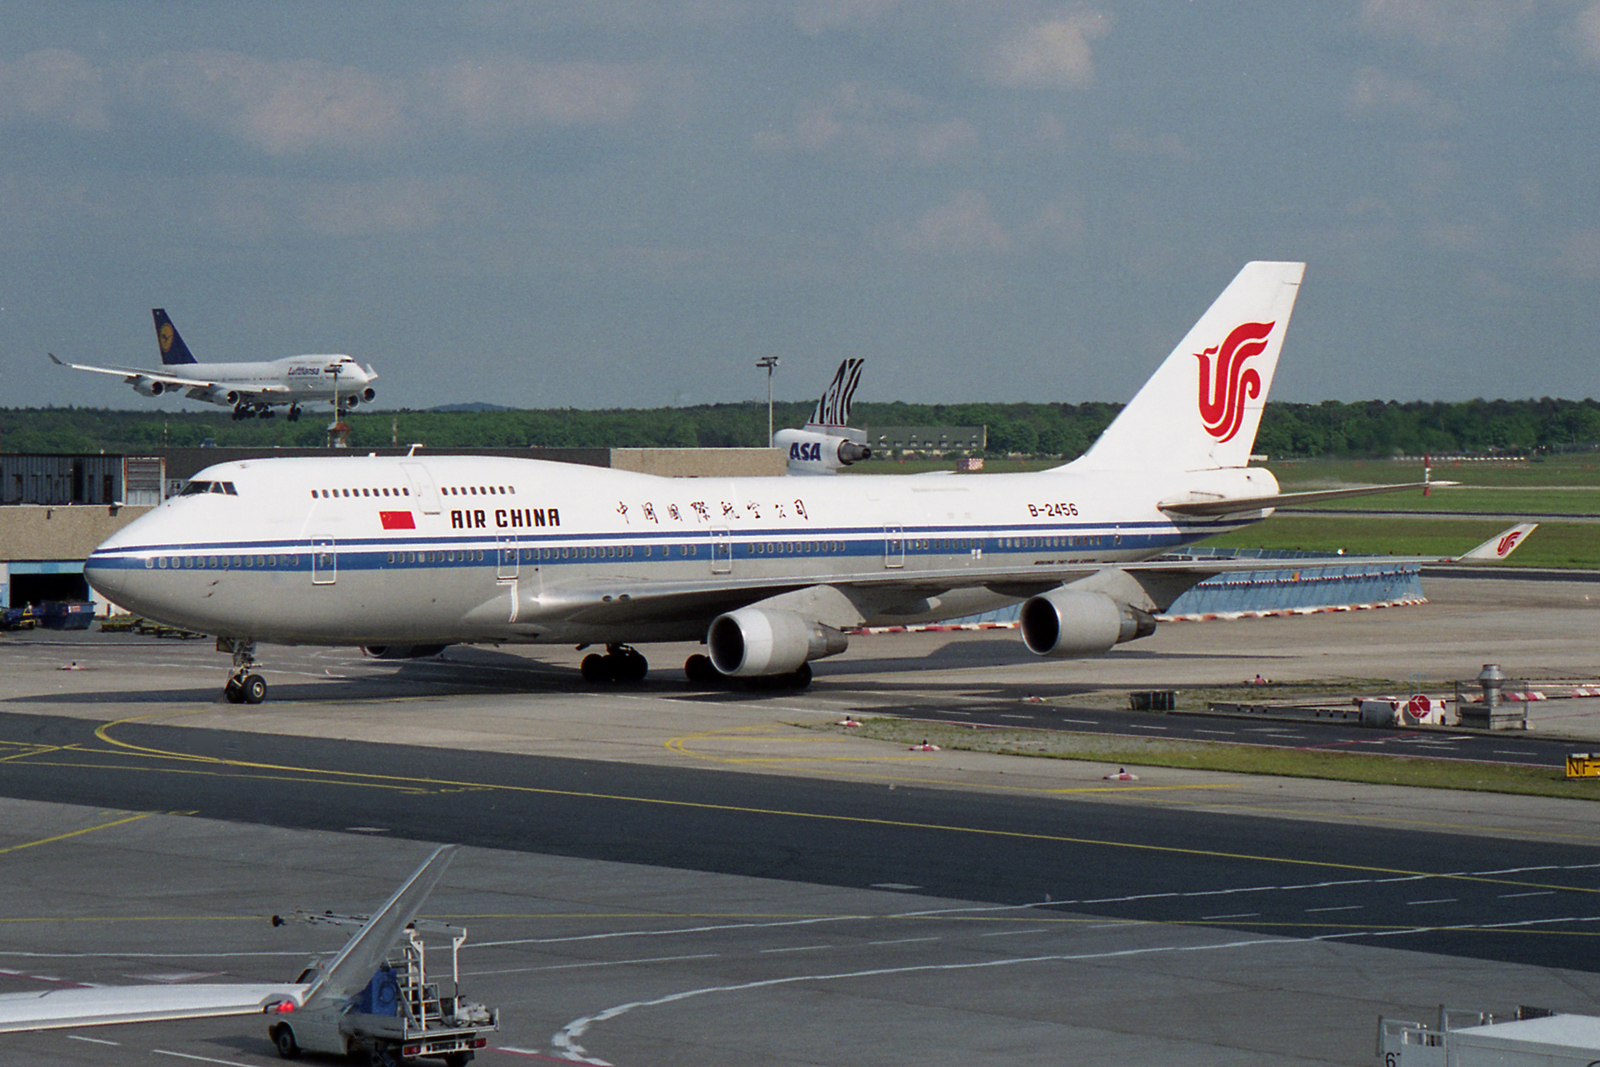 File:Air China Boeing 747-4J6M B-2456 (23827256979).jpg